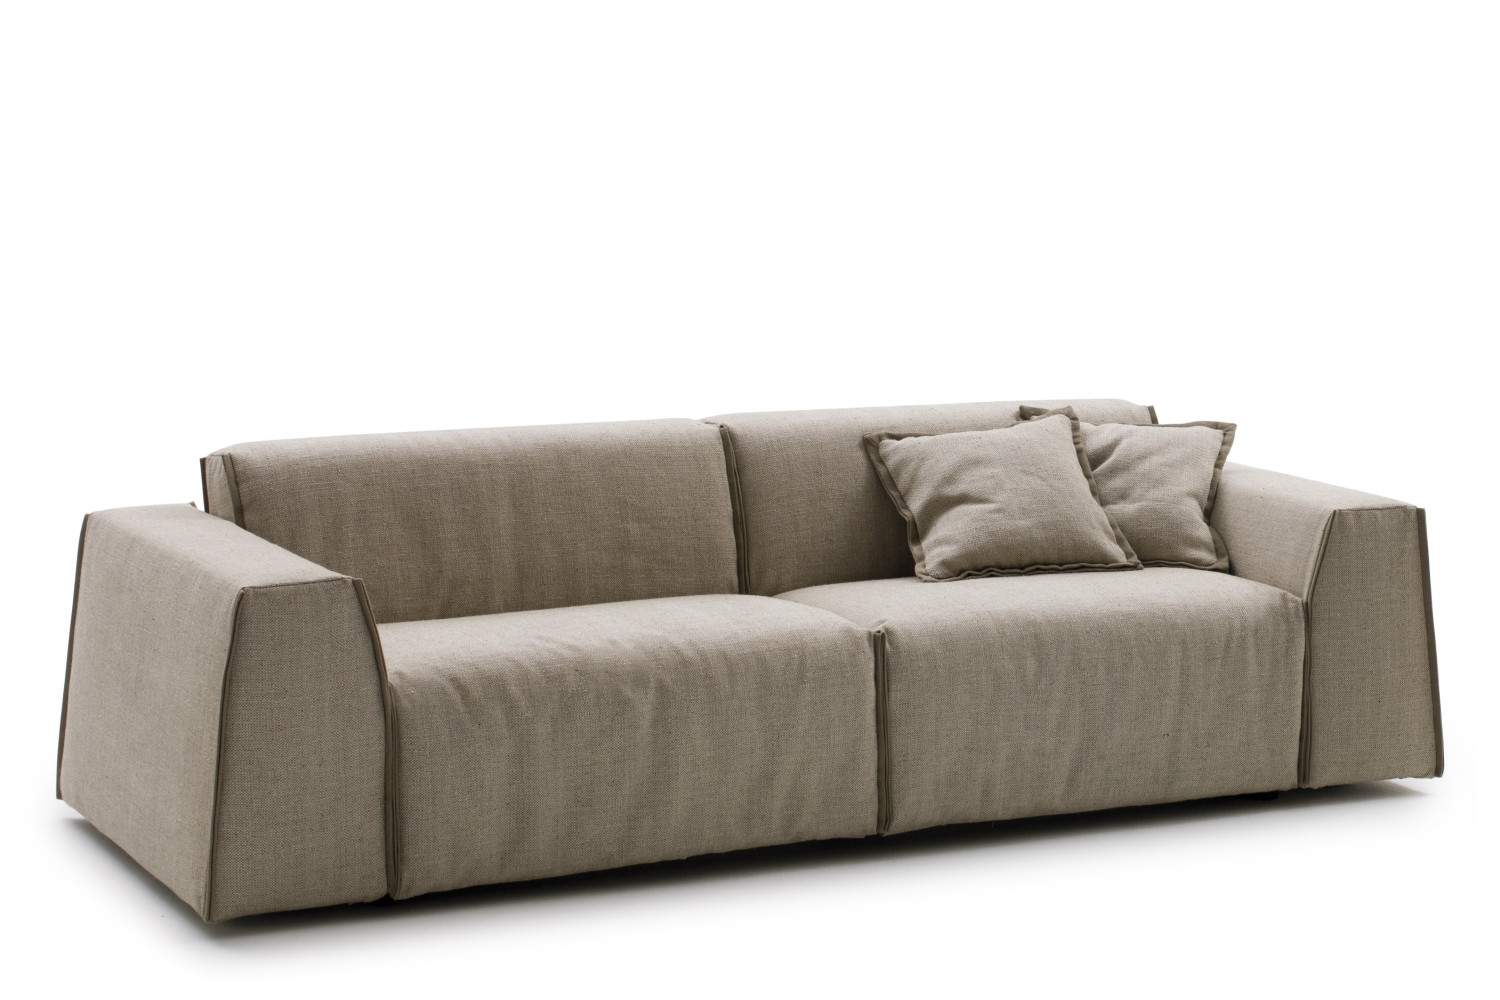 Parker sofa bed with low backrest - Divano letto 2 metri ...